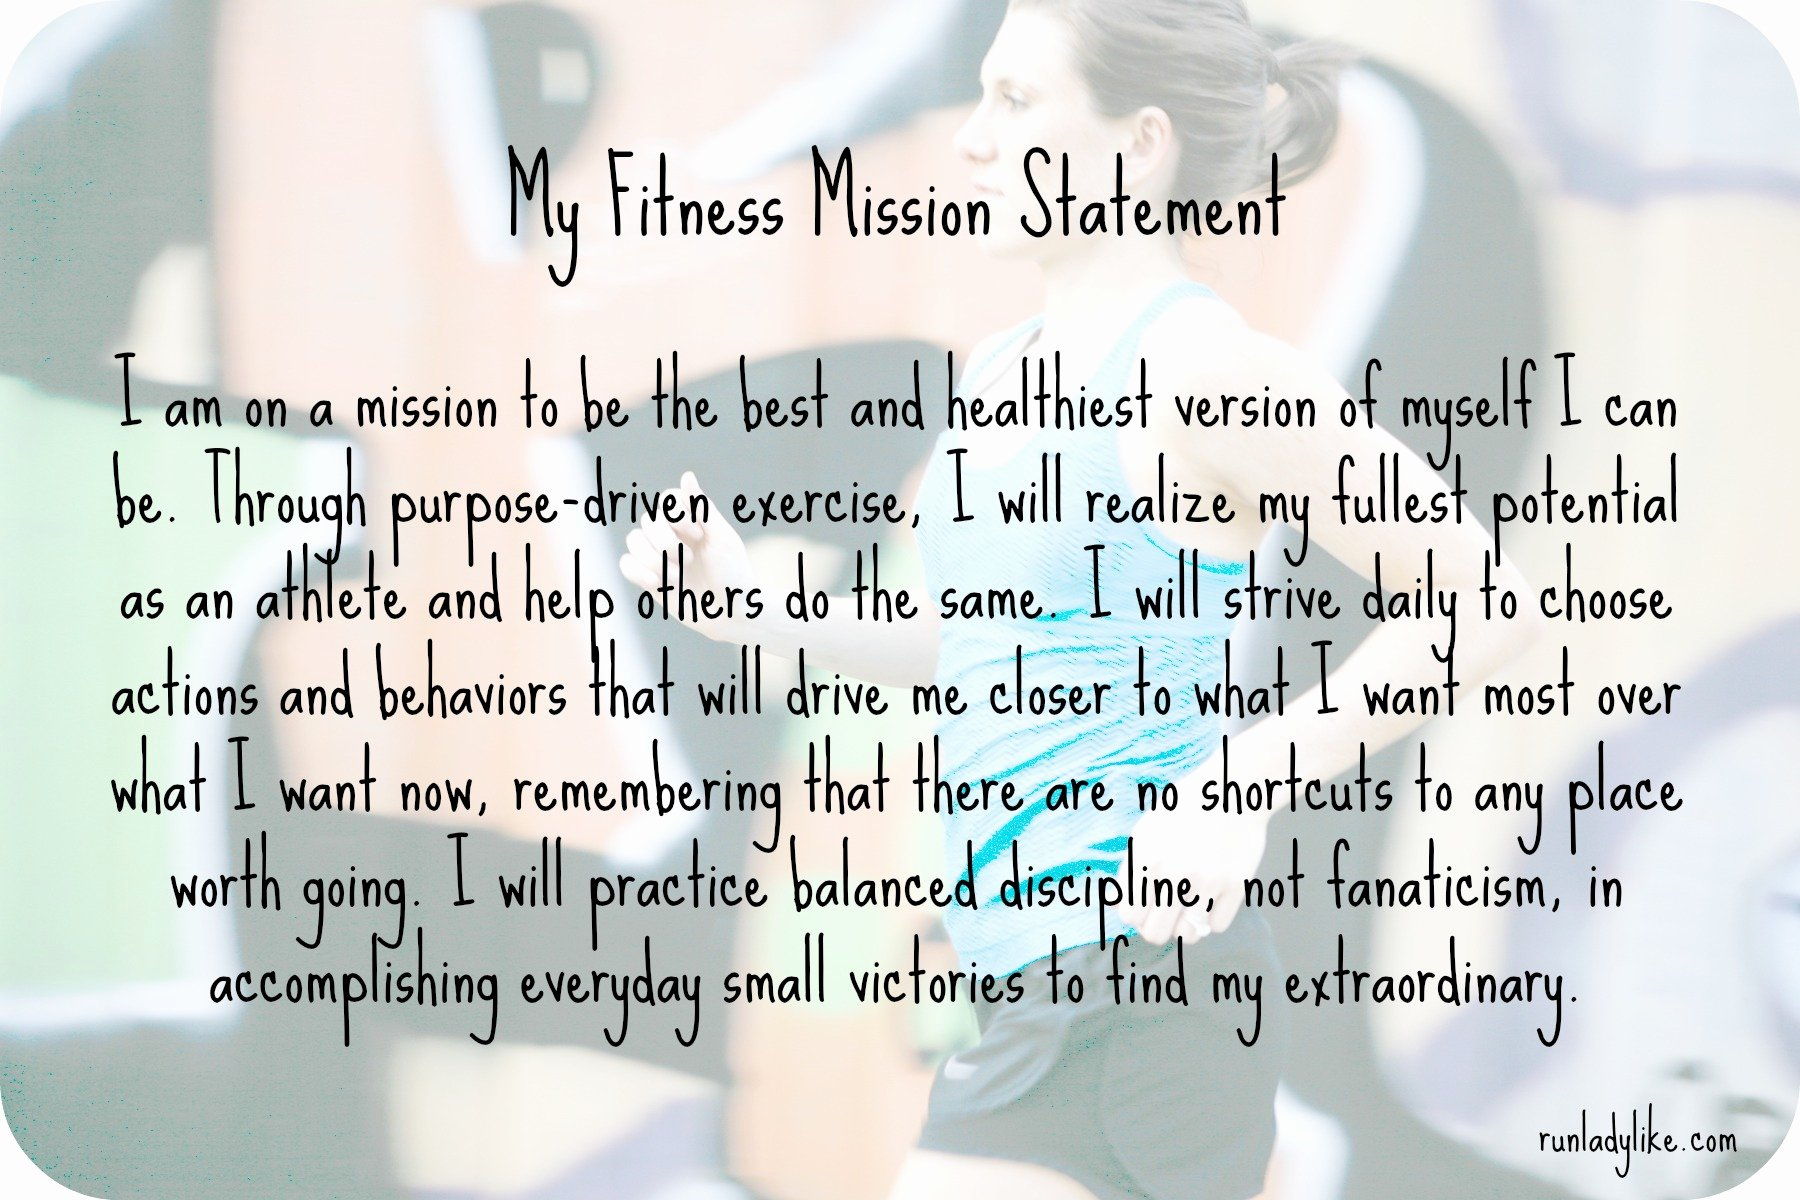 Lifetimes Mission Statement Best Of My Fitness Mission Statement Runladylike